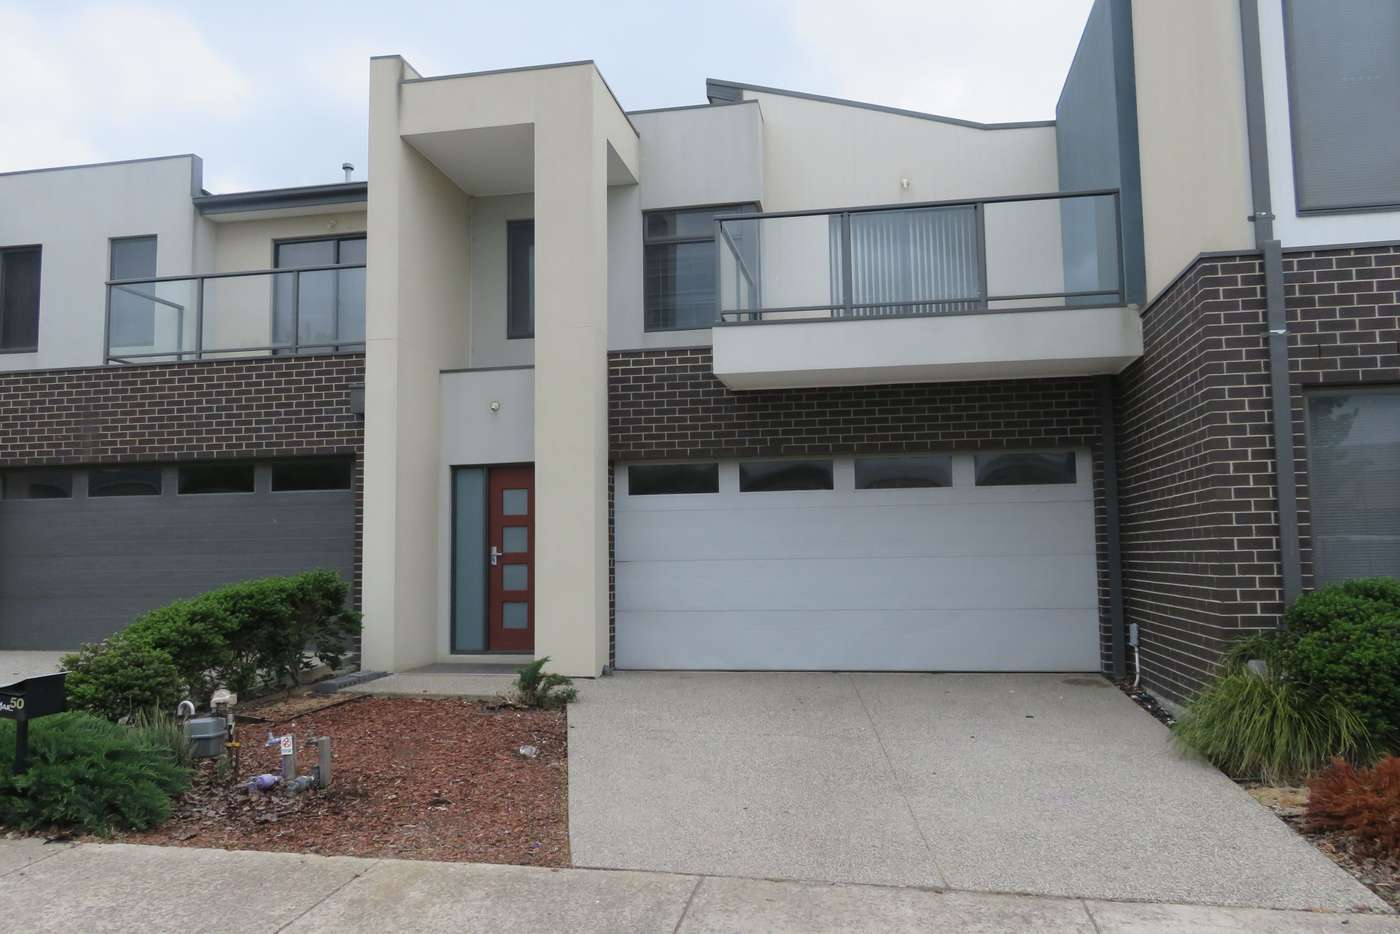 Main view of Homely townhouse listing, 50 Daymar Circuit, Craigieburn VIC 3064